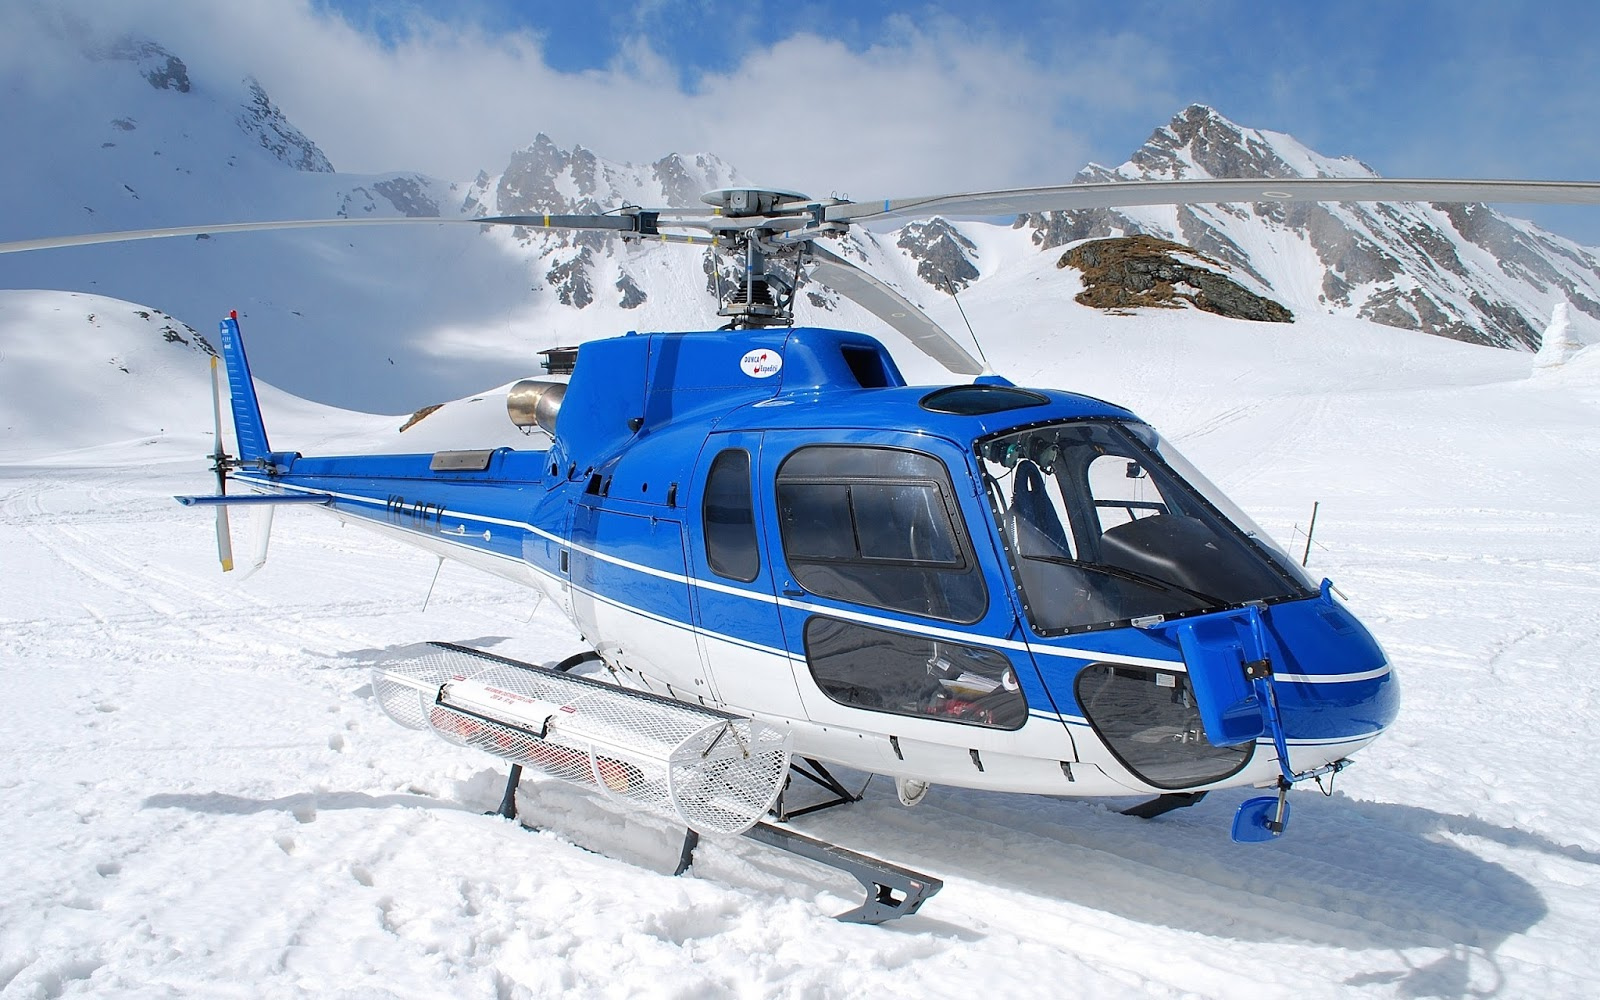 helicopter with Airplane Hd Wallpapers1080p Helicopter on Airplane Hd Wallpapers1080p Helicopter further Turkey Mugla Datca Datca furthermore A0 18 32 01200000033865115873275202018 likewise Flag And Helicopter 1024x554 1024x554 further guardianflight.